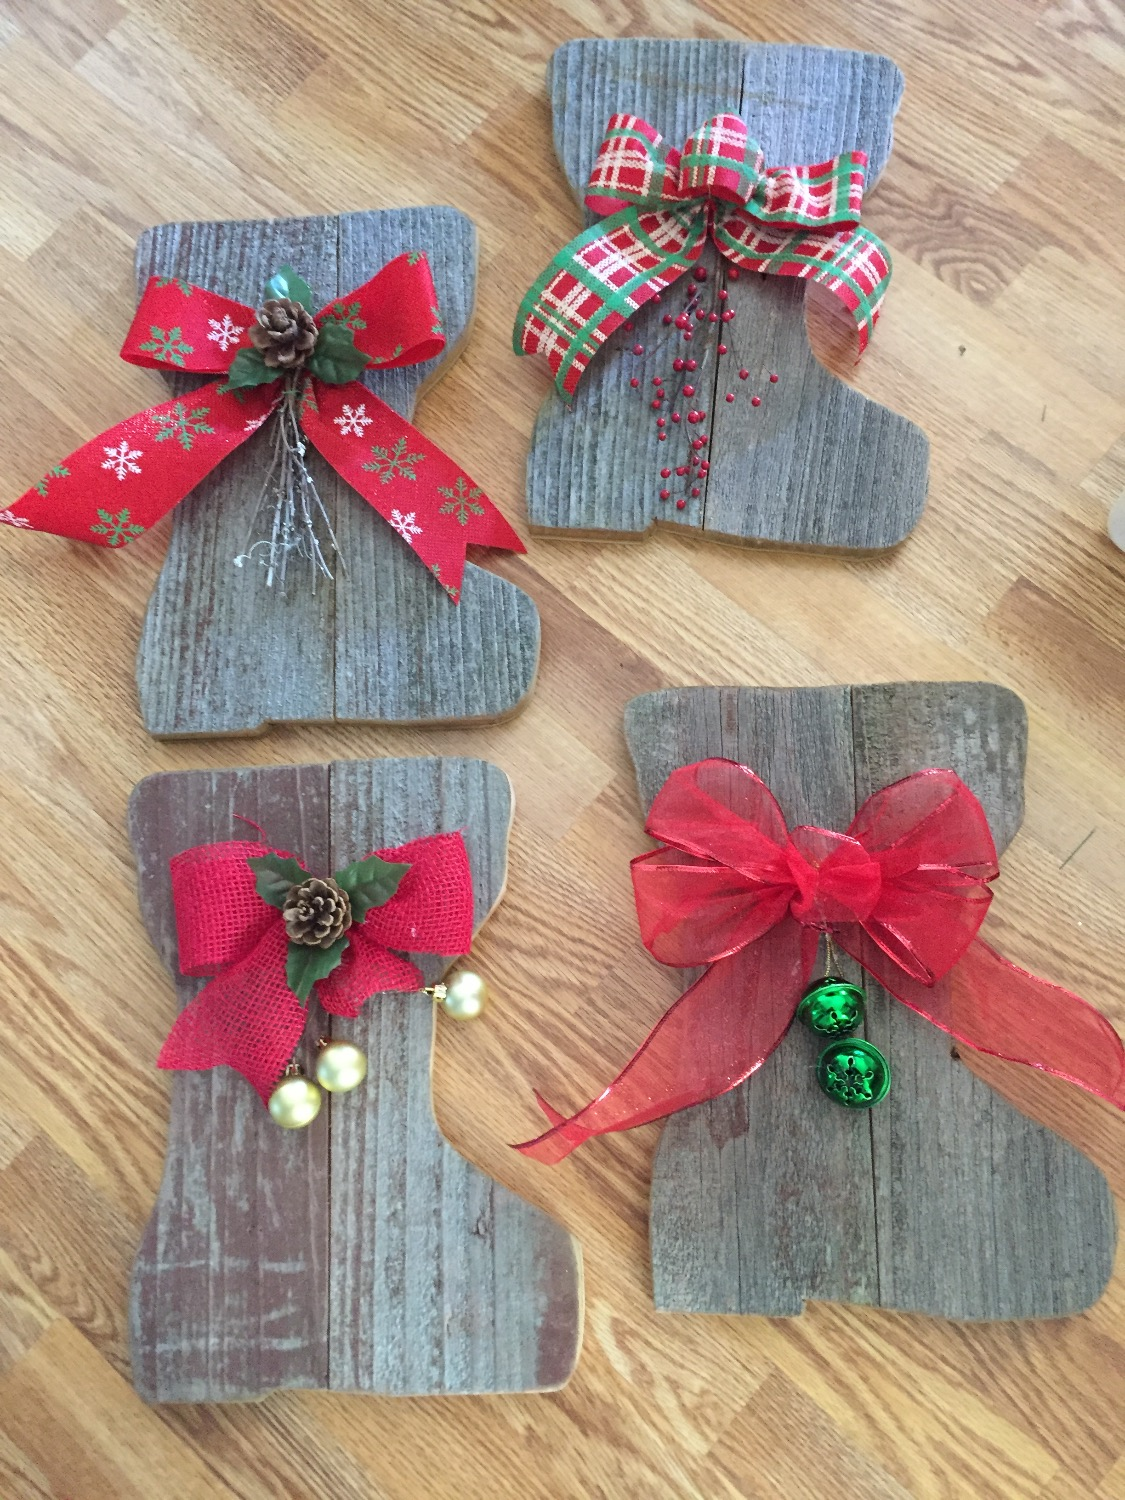 Barn Wood Stockings for the Holidays